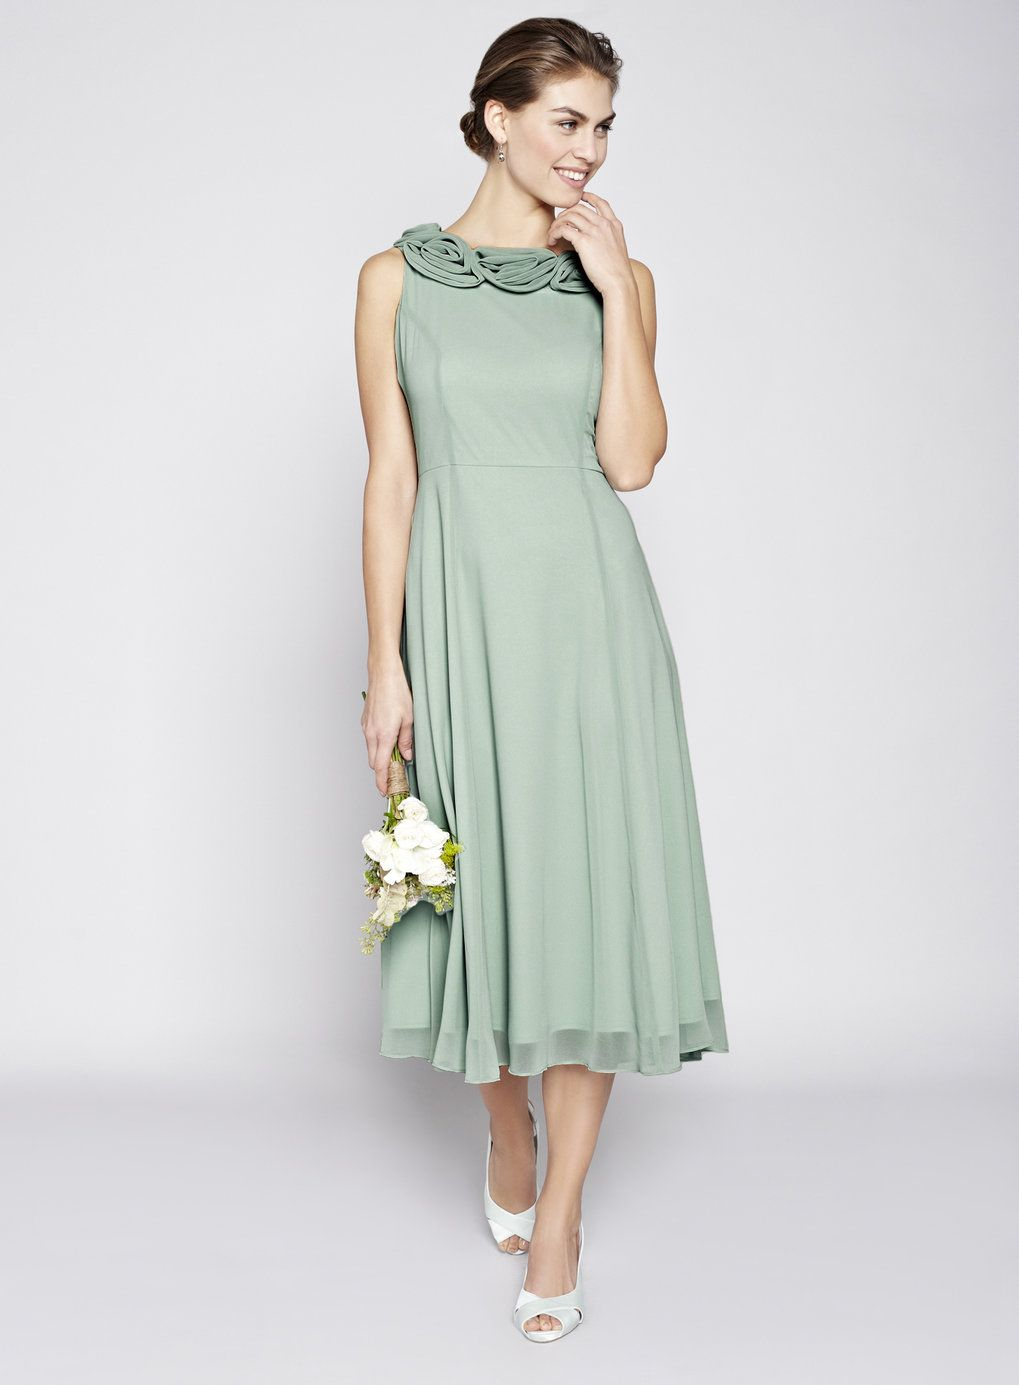 Dark mint nancy bridesmaid dress shoes pinterest wedding dark mint nancy bridesmaid dress ombrellifo Image collections